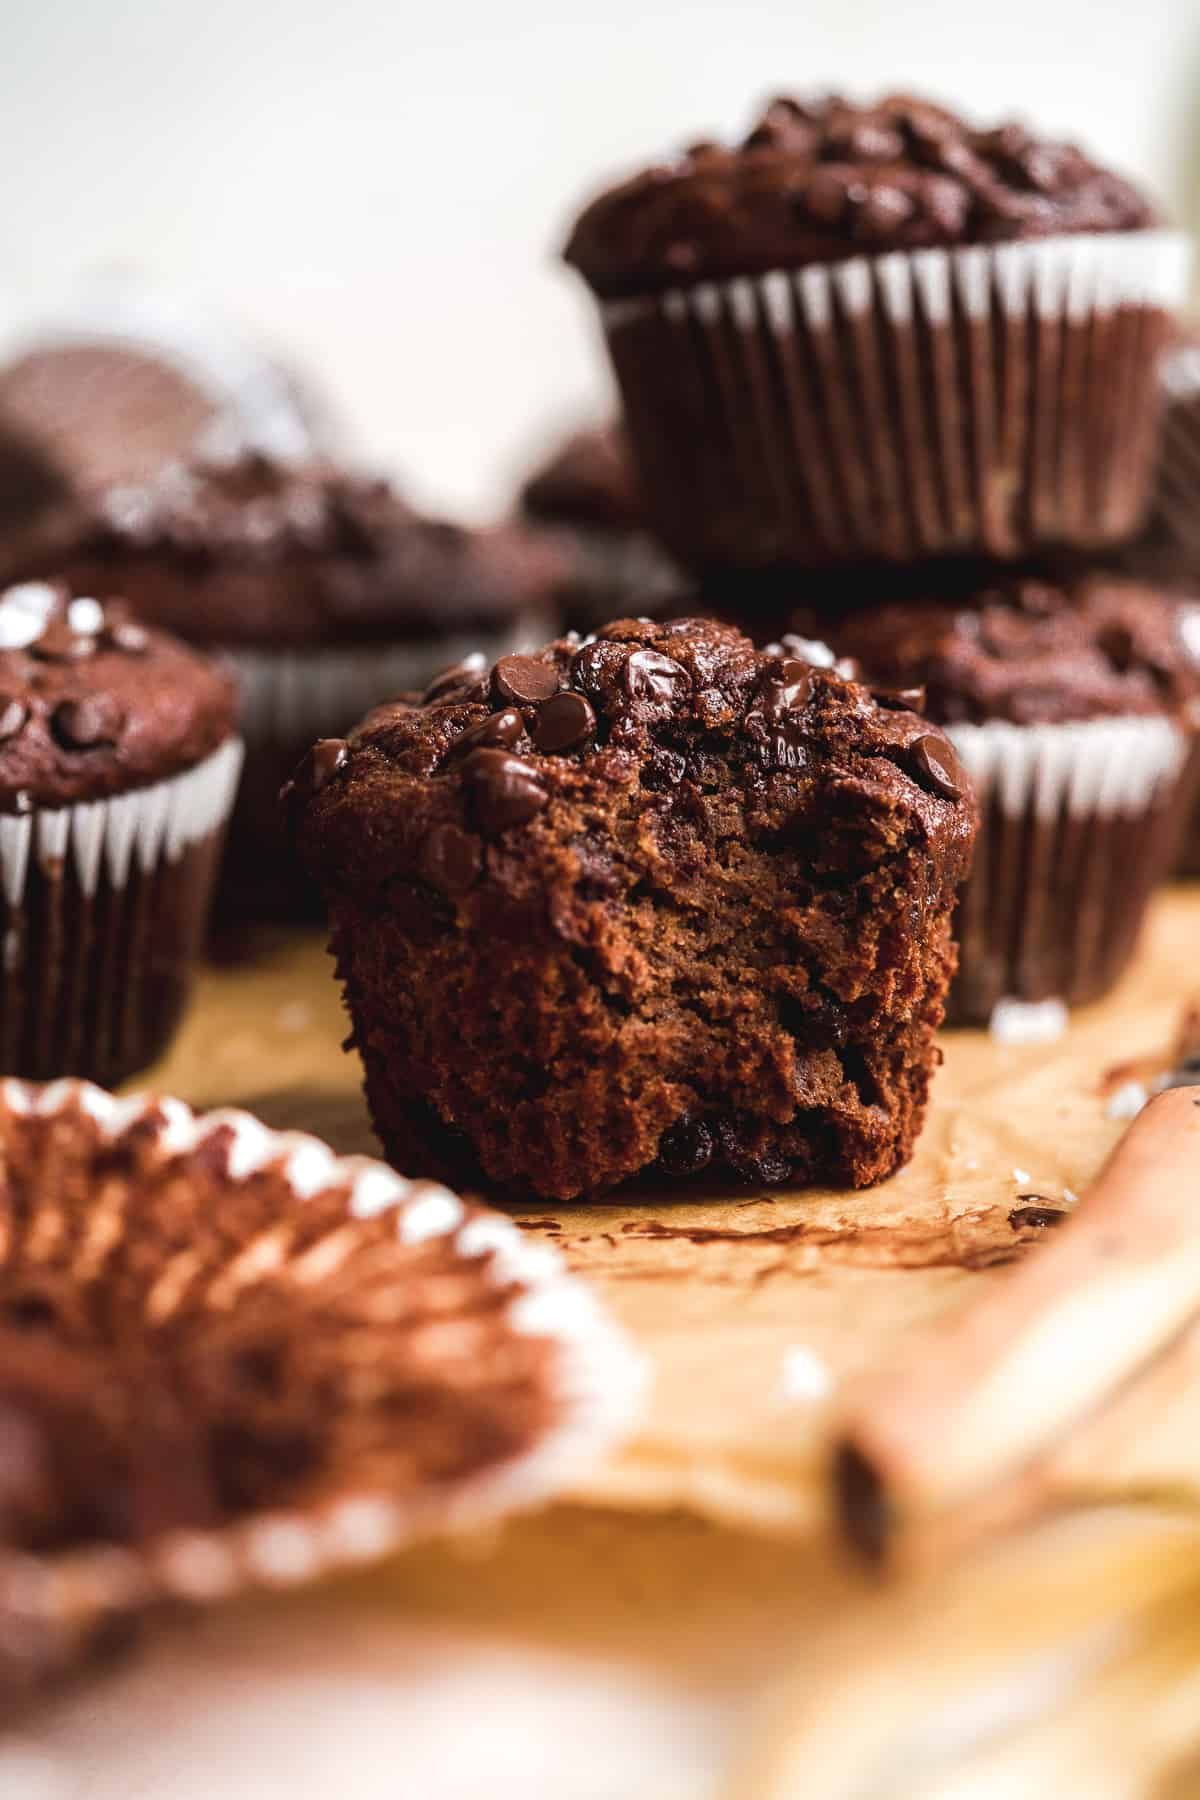 Up close view of chocolate muffin with a bite taken out of it on brown parchment paper.